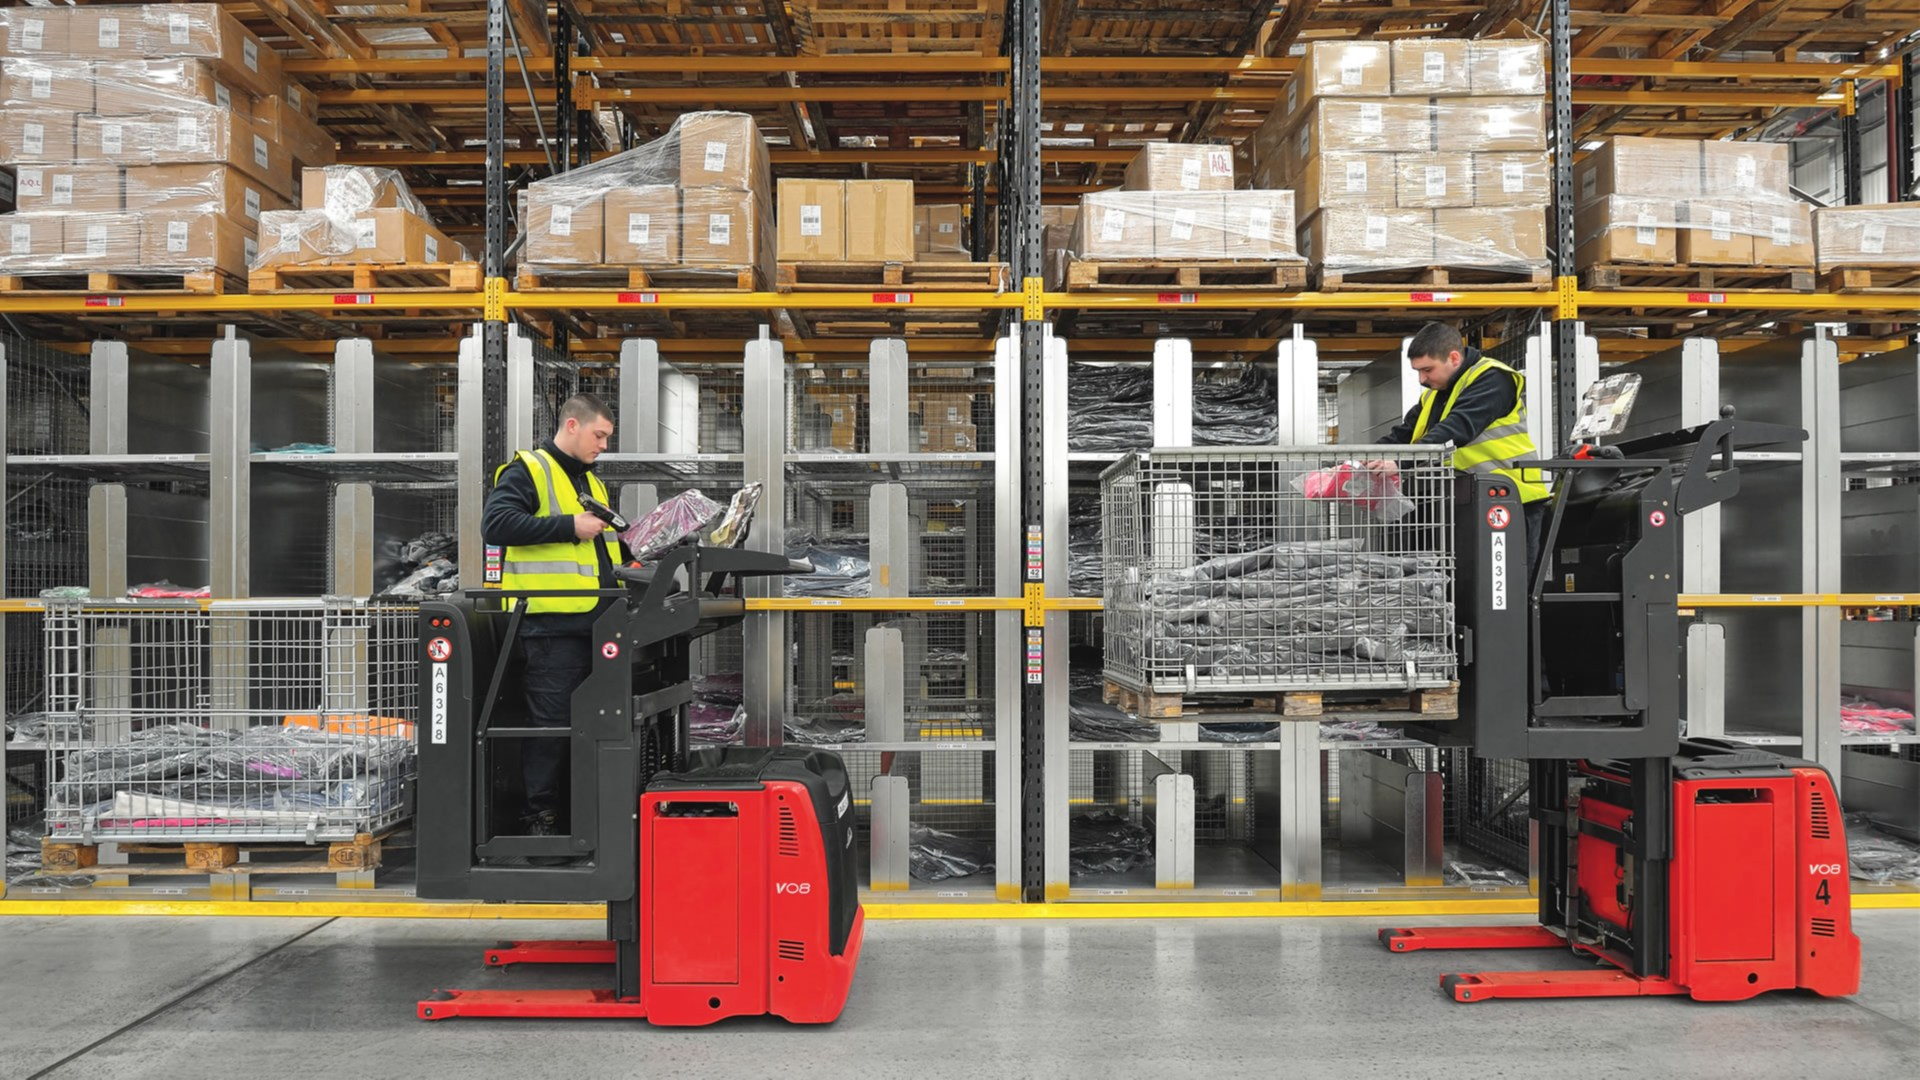 Order Pickers From Linde Material Handling